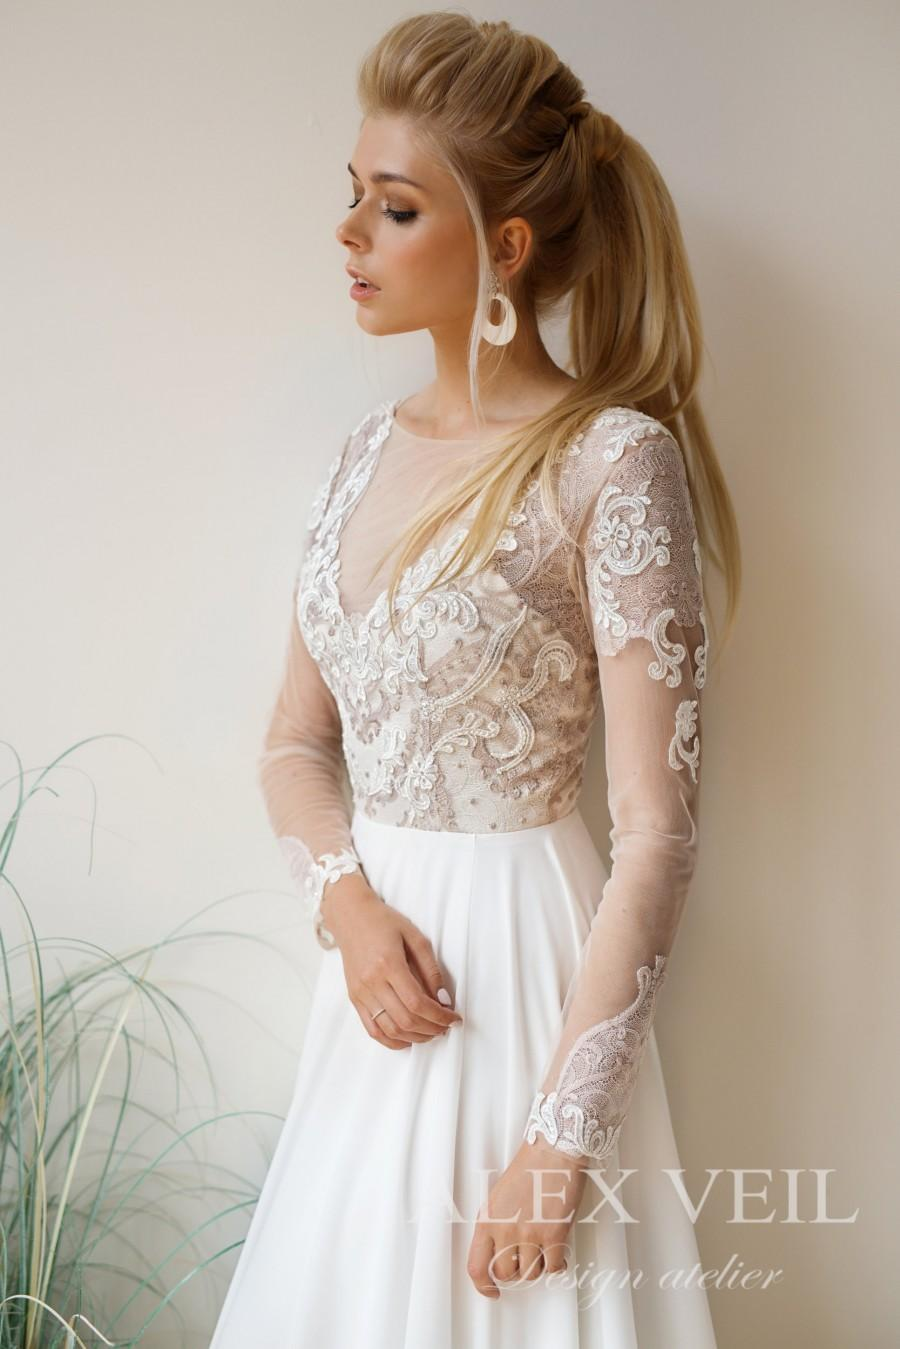 Wedding - Wedding dress 'ALEXIS' // Boho wedding dress with lace top, long sleeves and flowy skirt of crepe chiffon